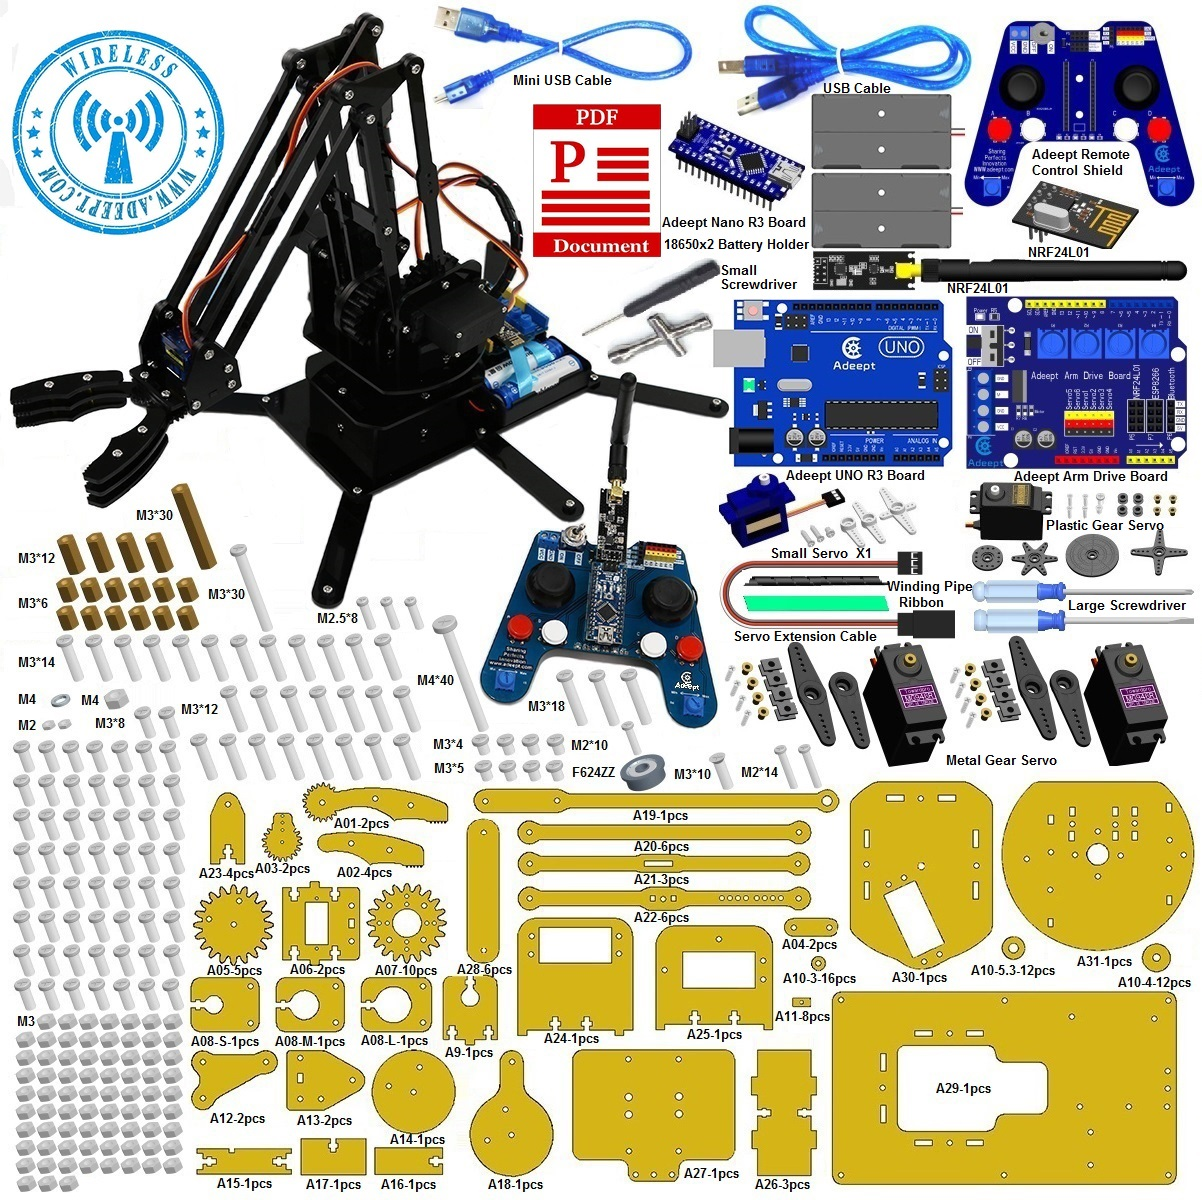 Adeept arduino compatible robotic arm kit based on